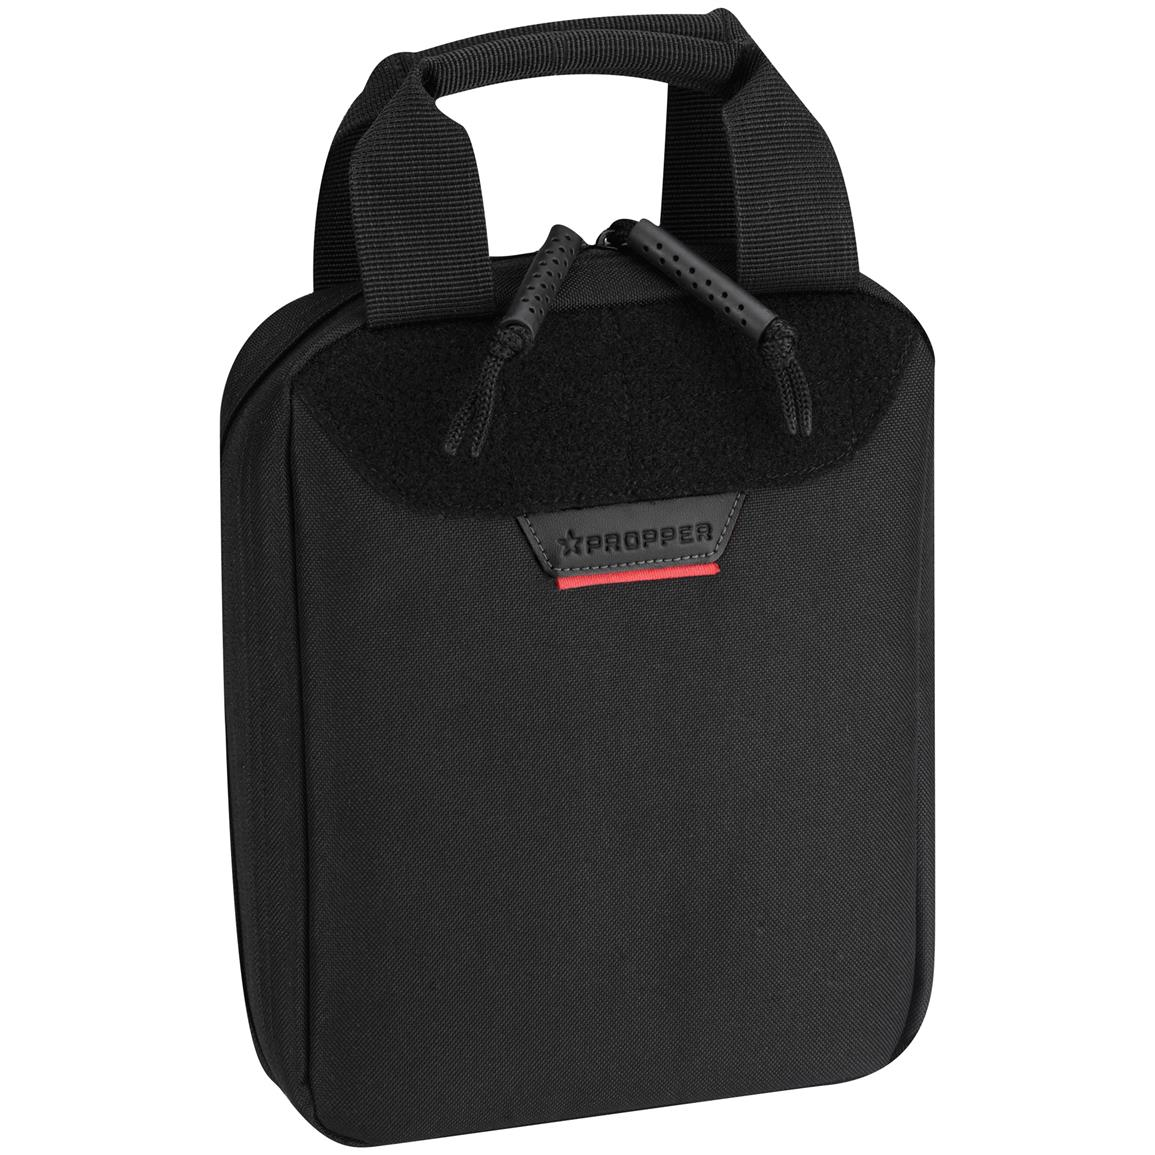 "Propper 9"" x 8"" Daily Carry Organizer, Black"